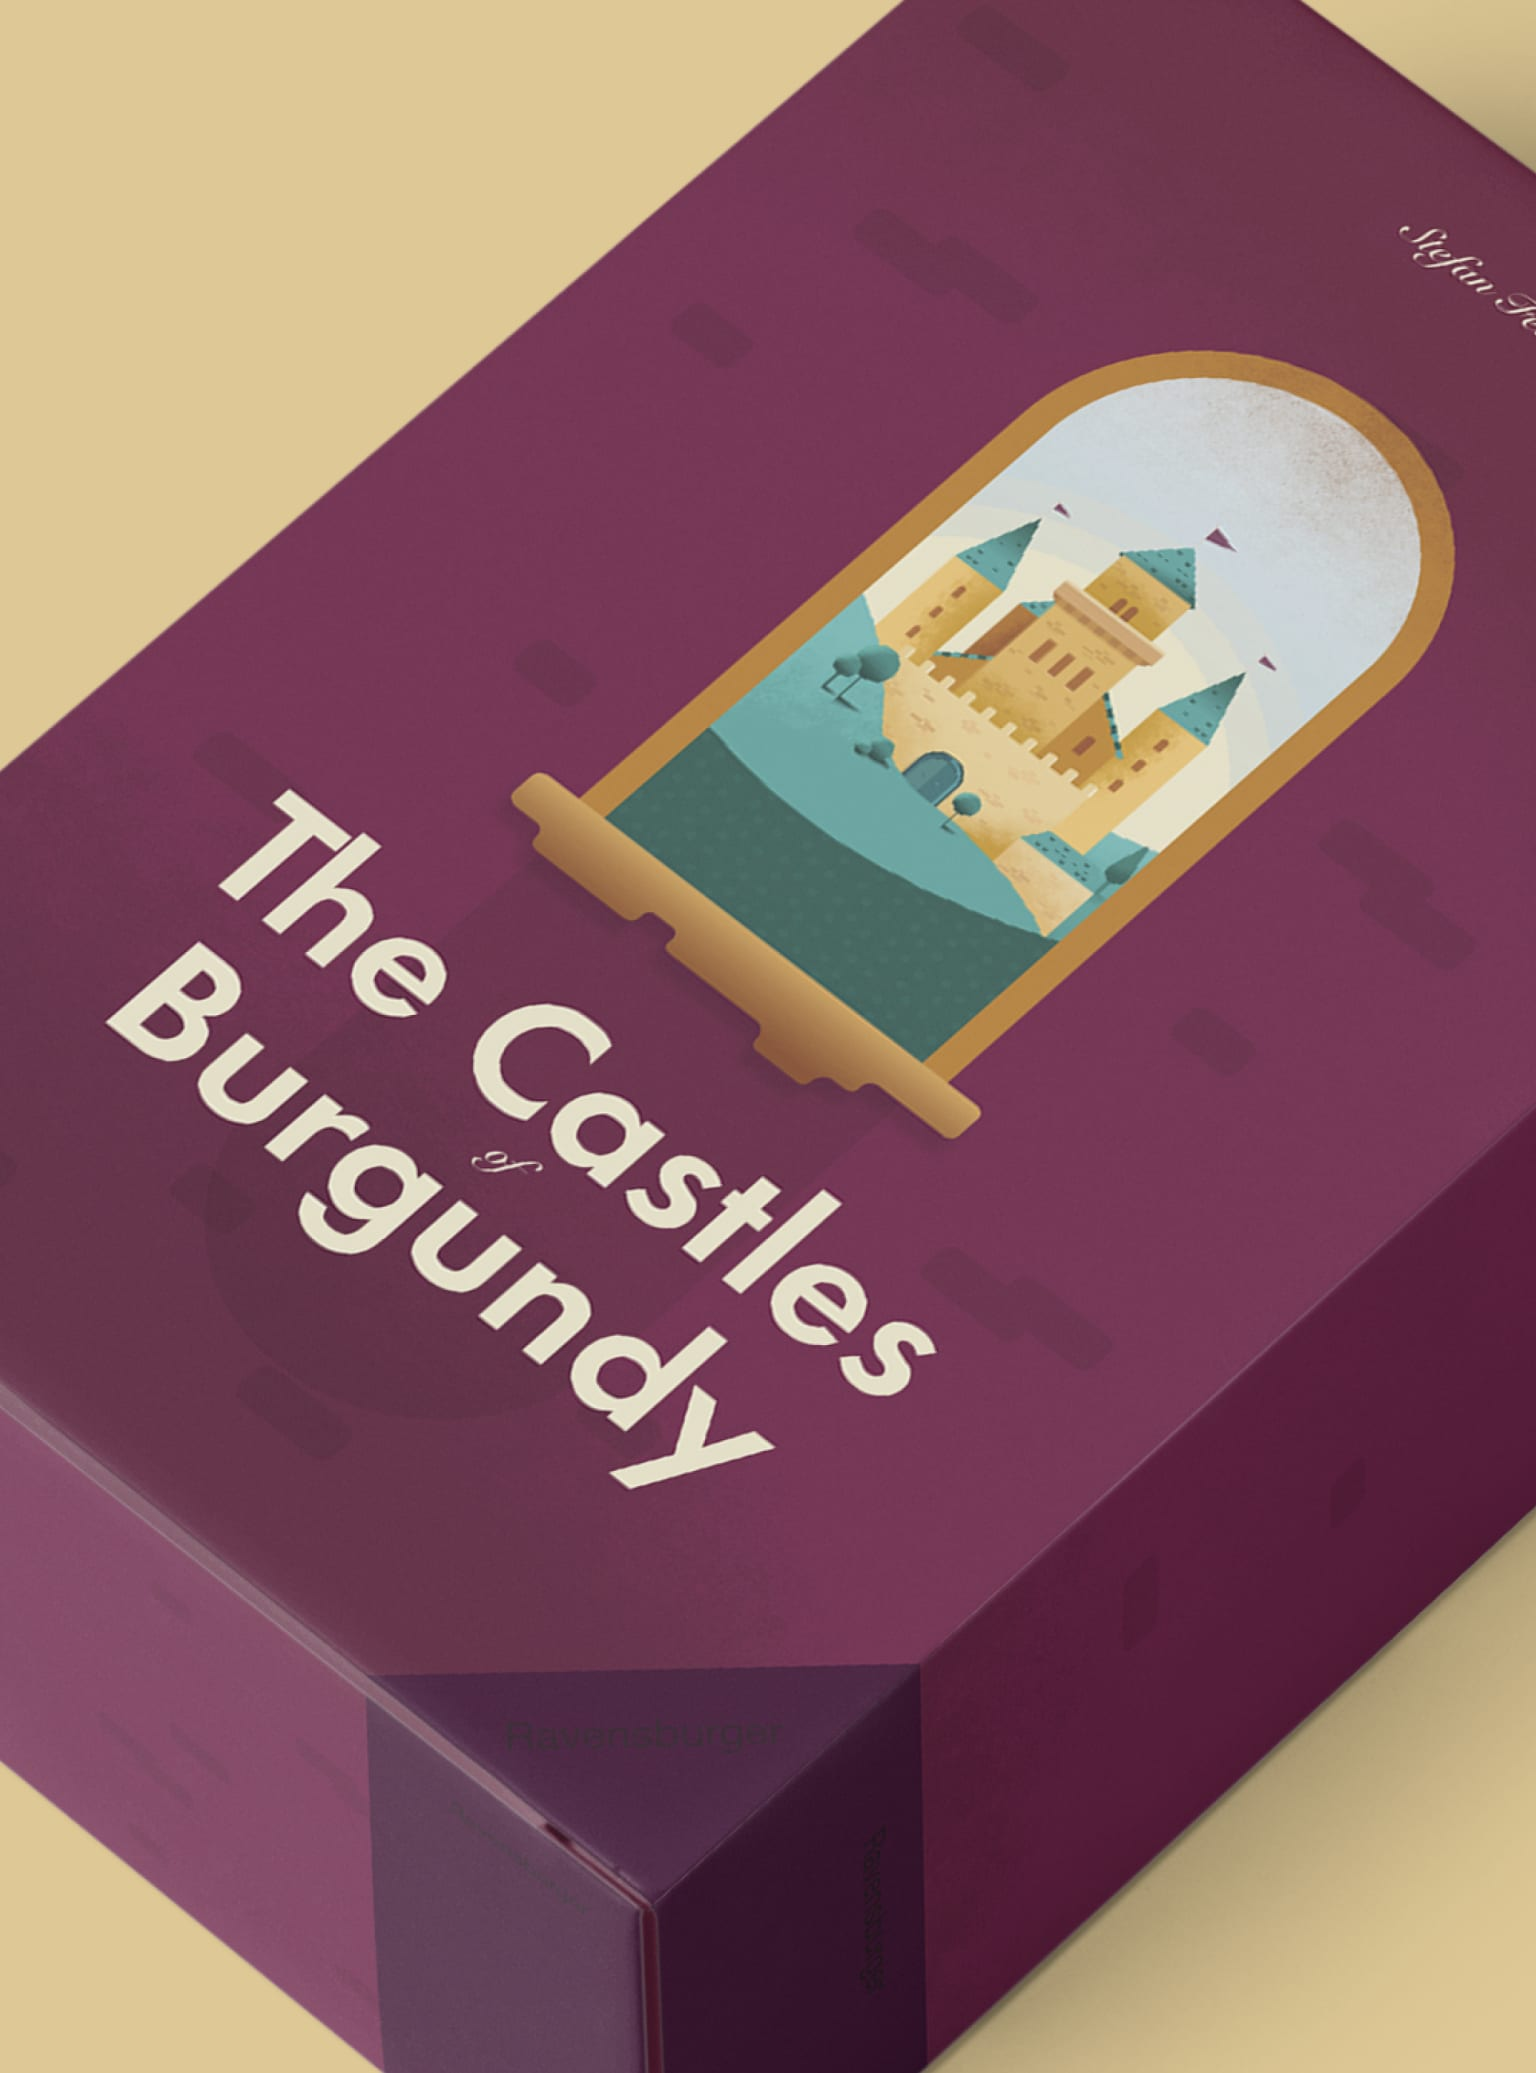 The Castles of Burgundy Redesign